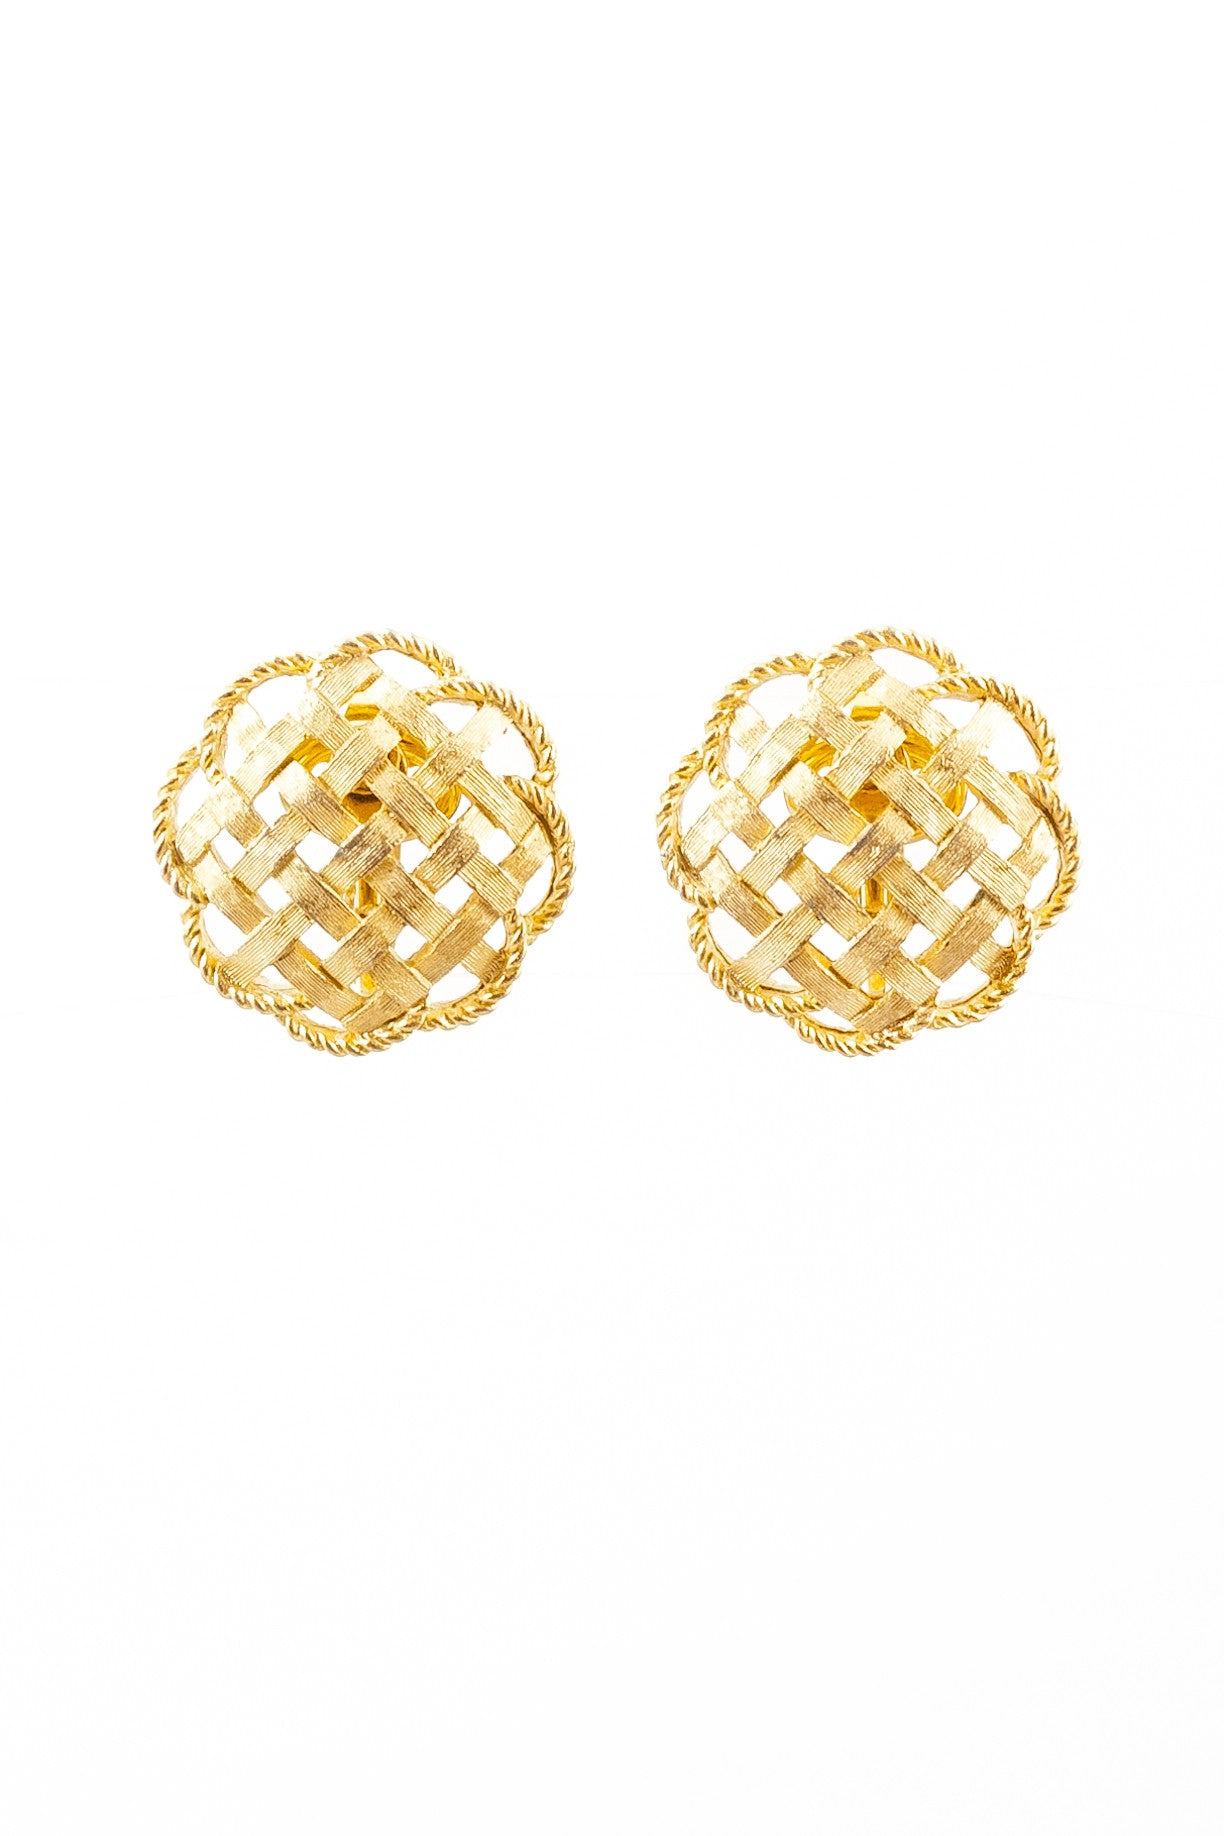 60's__Trifari__Floral Weaved Clip-on Earrings